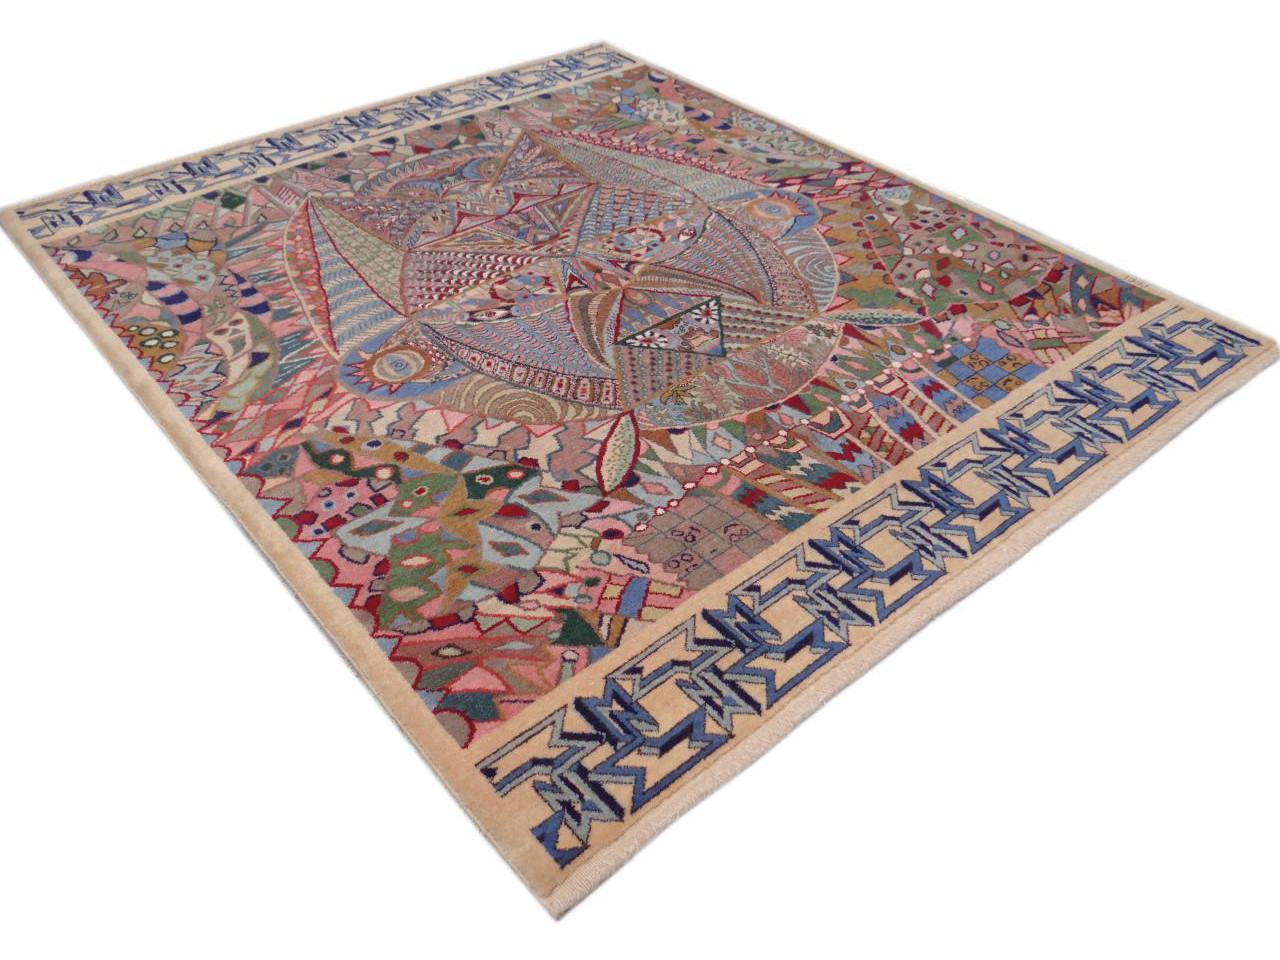 39 alien 39 of belgian creation tapis luxury n 2180 183x151cm - Tapis contemporain belgique ...